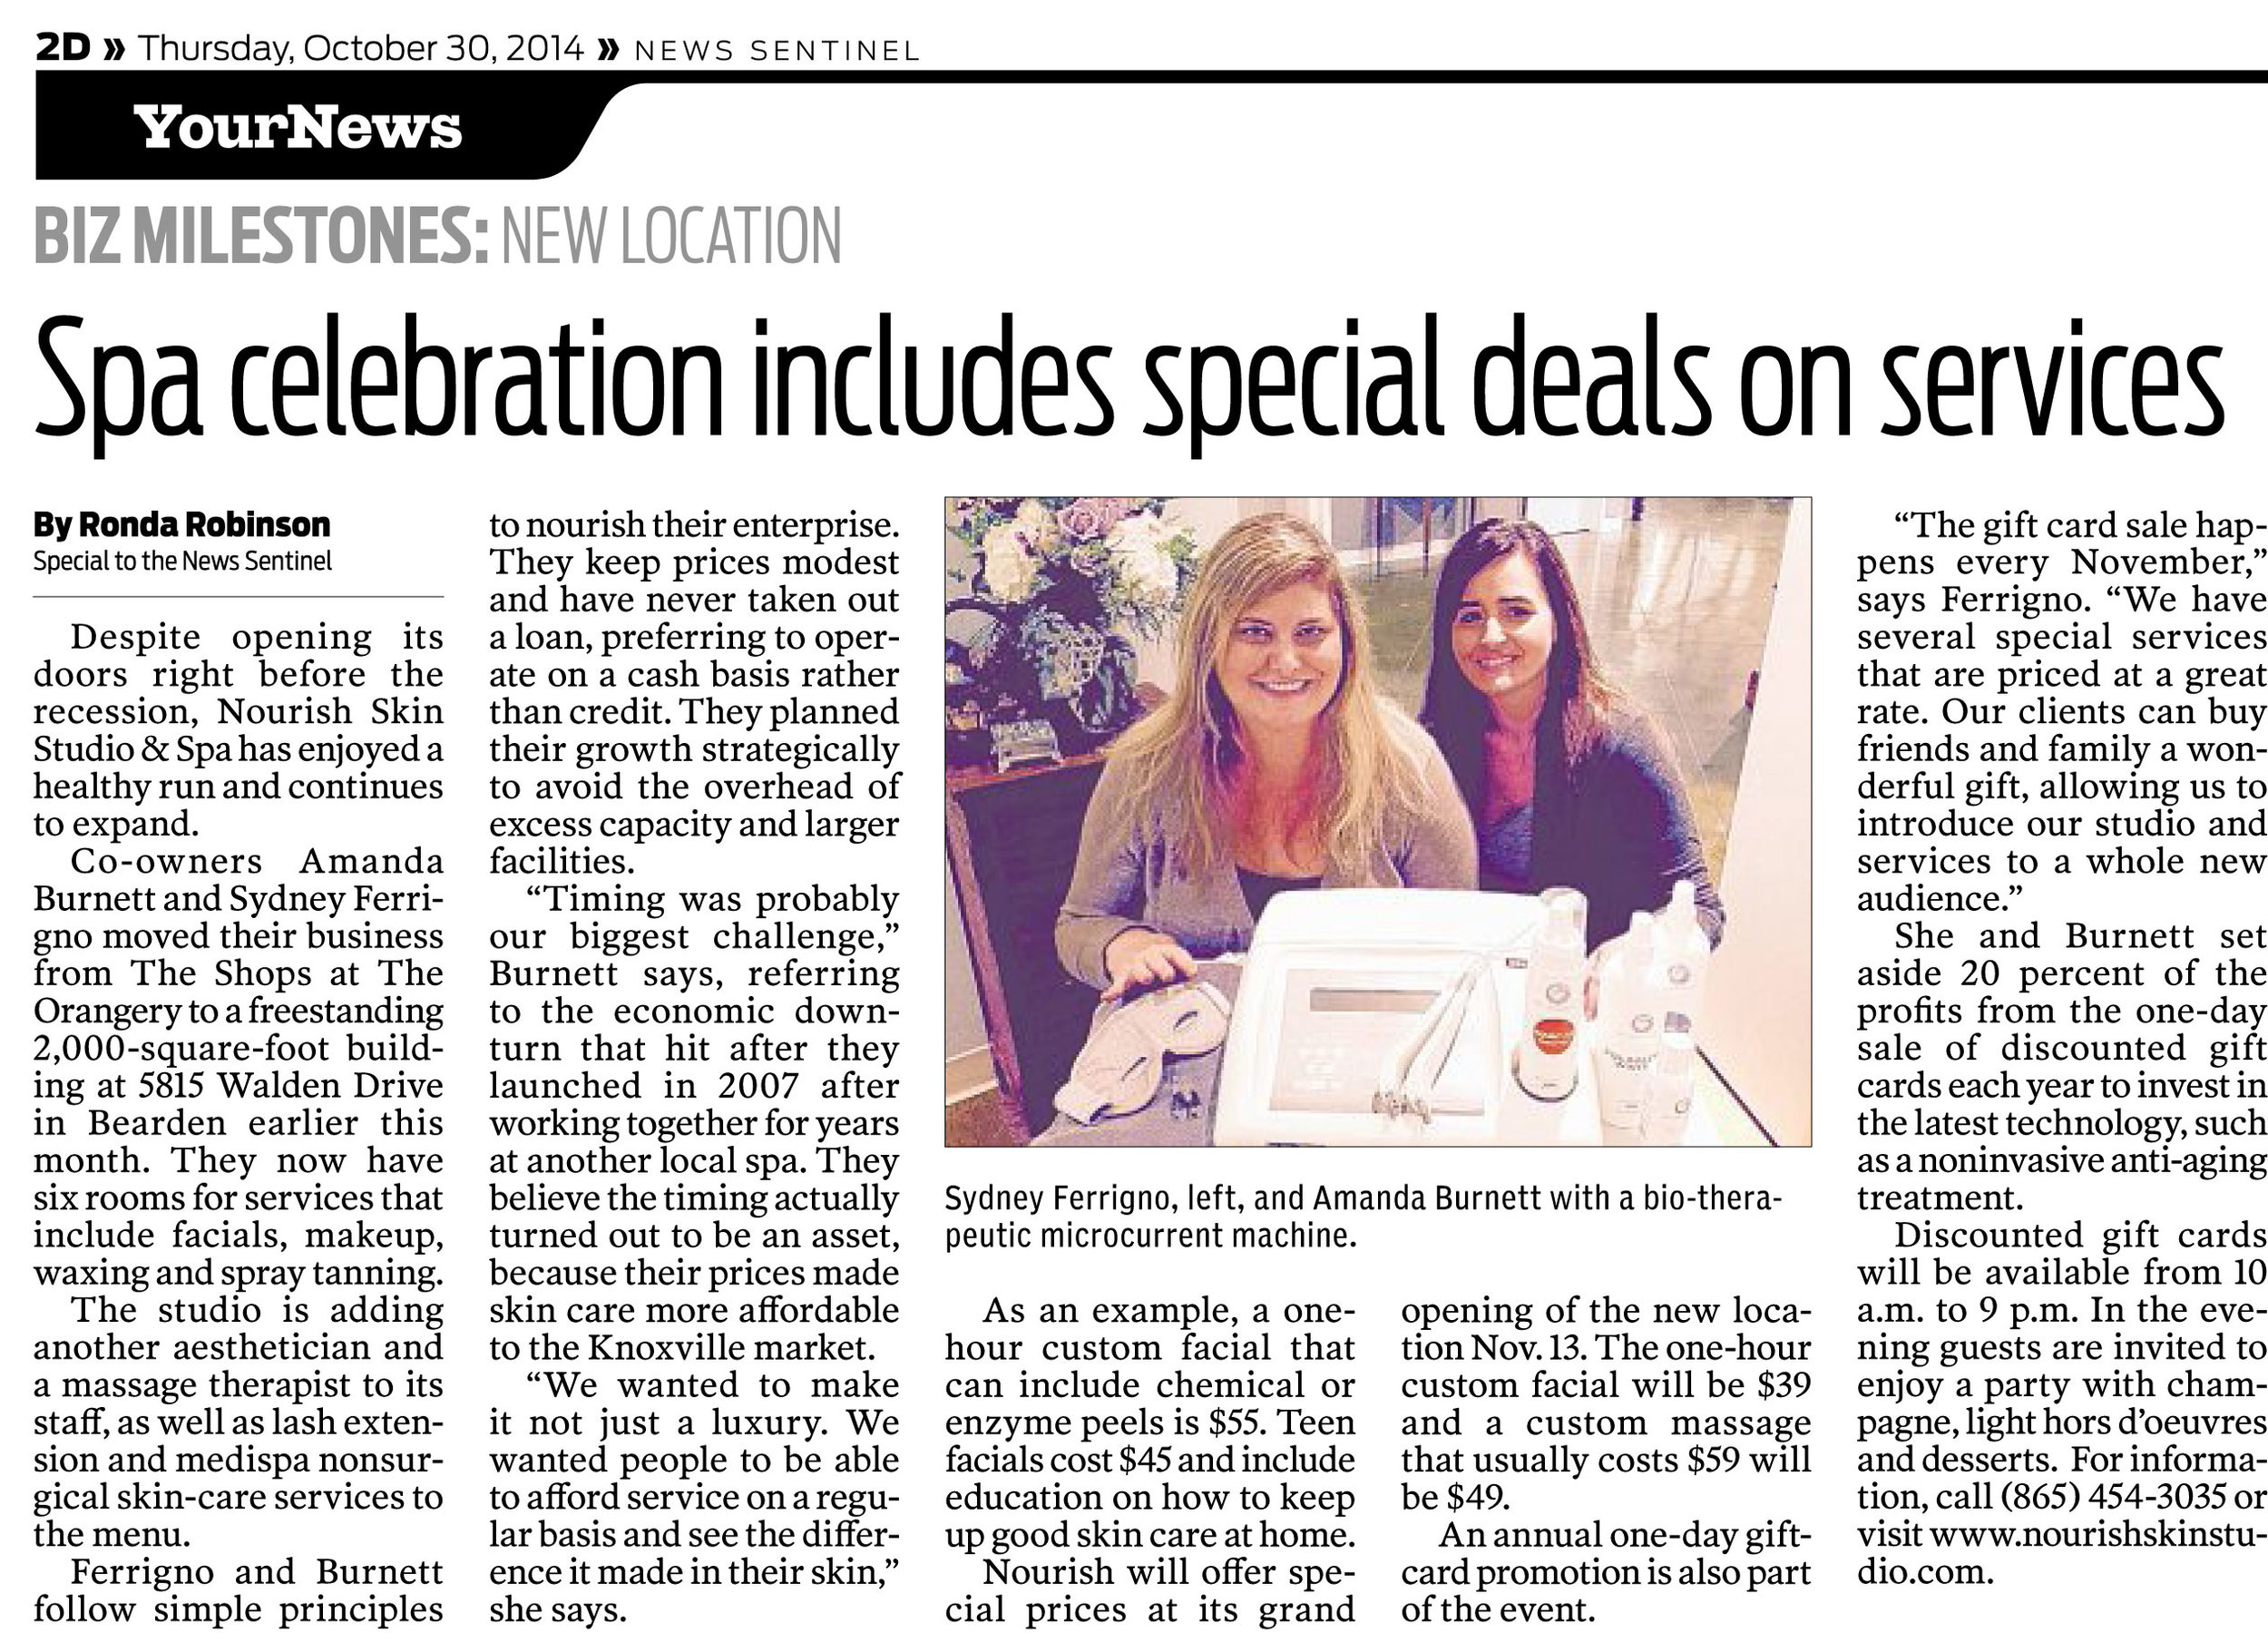 Feature in the Knoxville News Sentinel on October 30, 2014